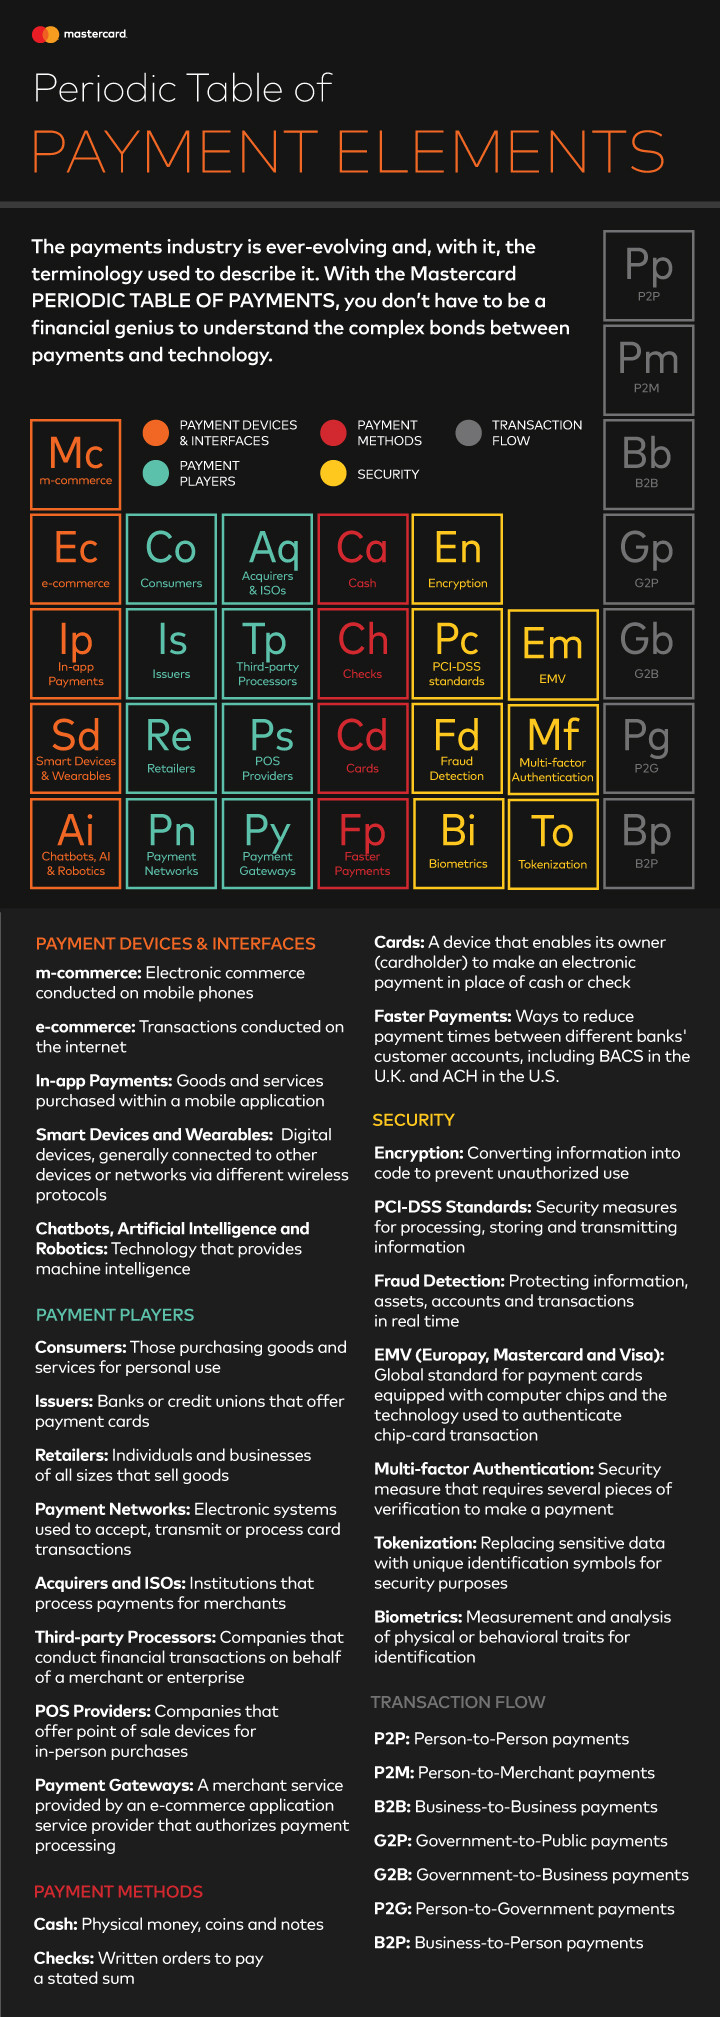 Mastercard periodic table of payment elements global hub mastercard periodic table of payment elements gamestrikefo Gallery